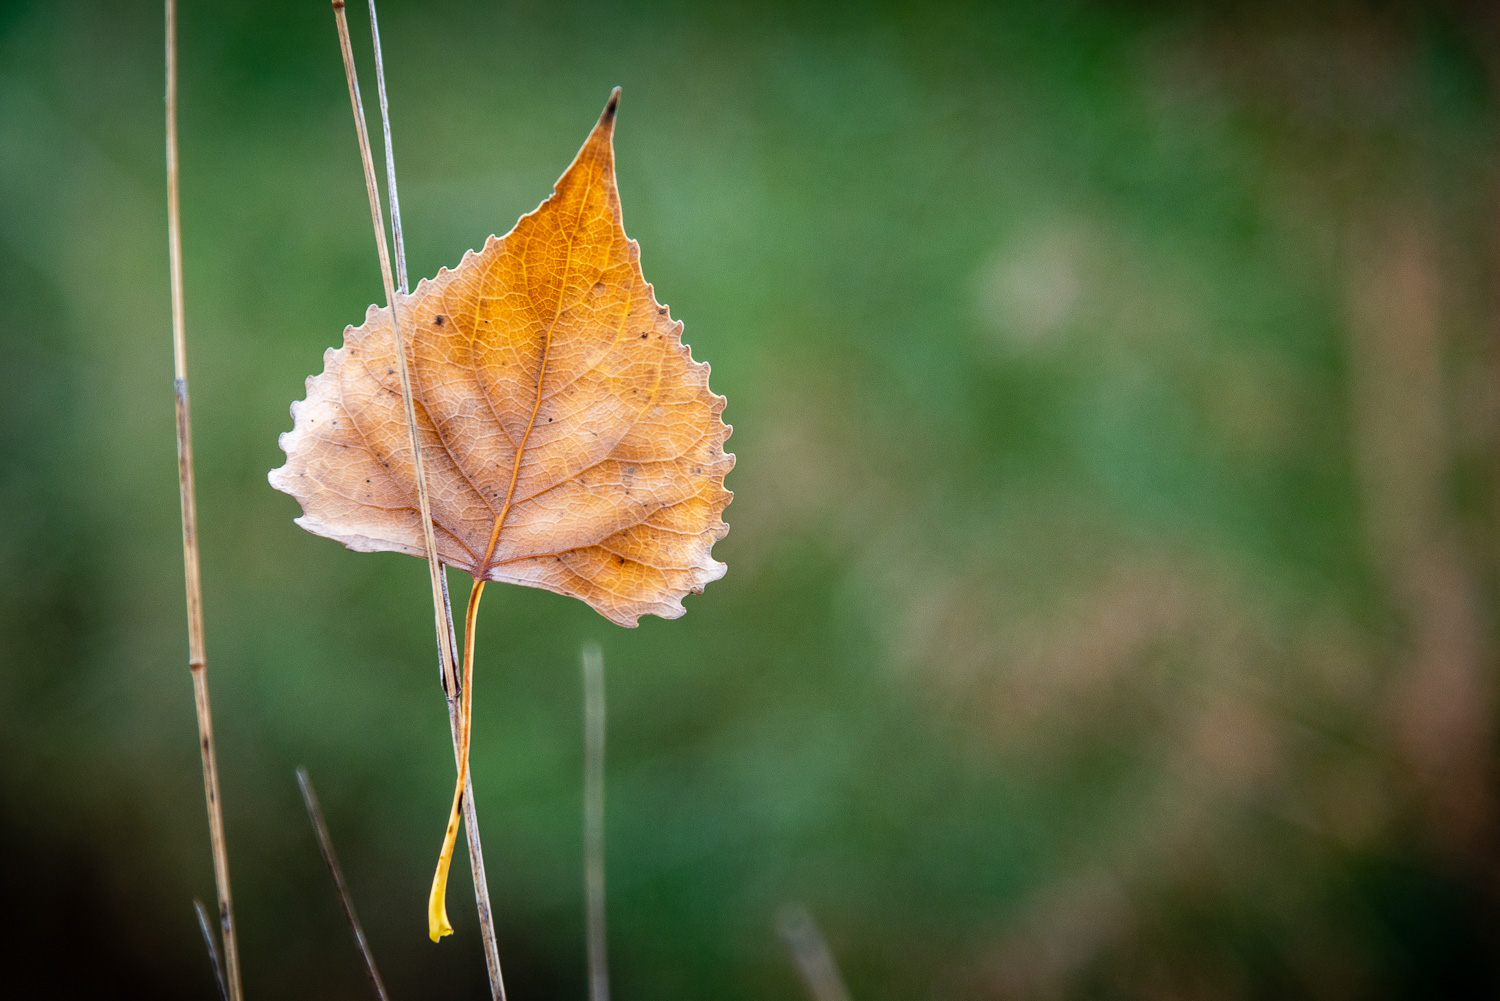 The odds aginst this quacking aspen leaf lodging itself between two blades of grass are astronimical.